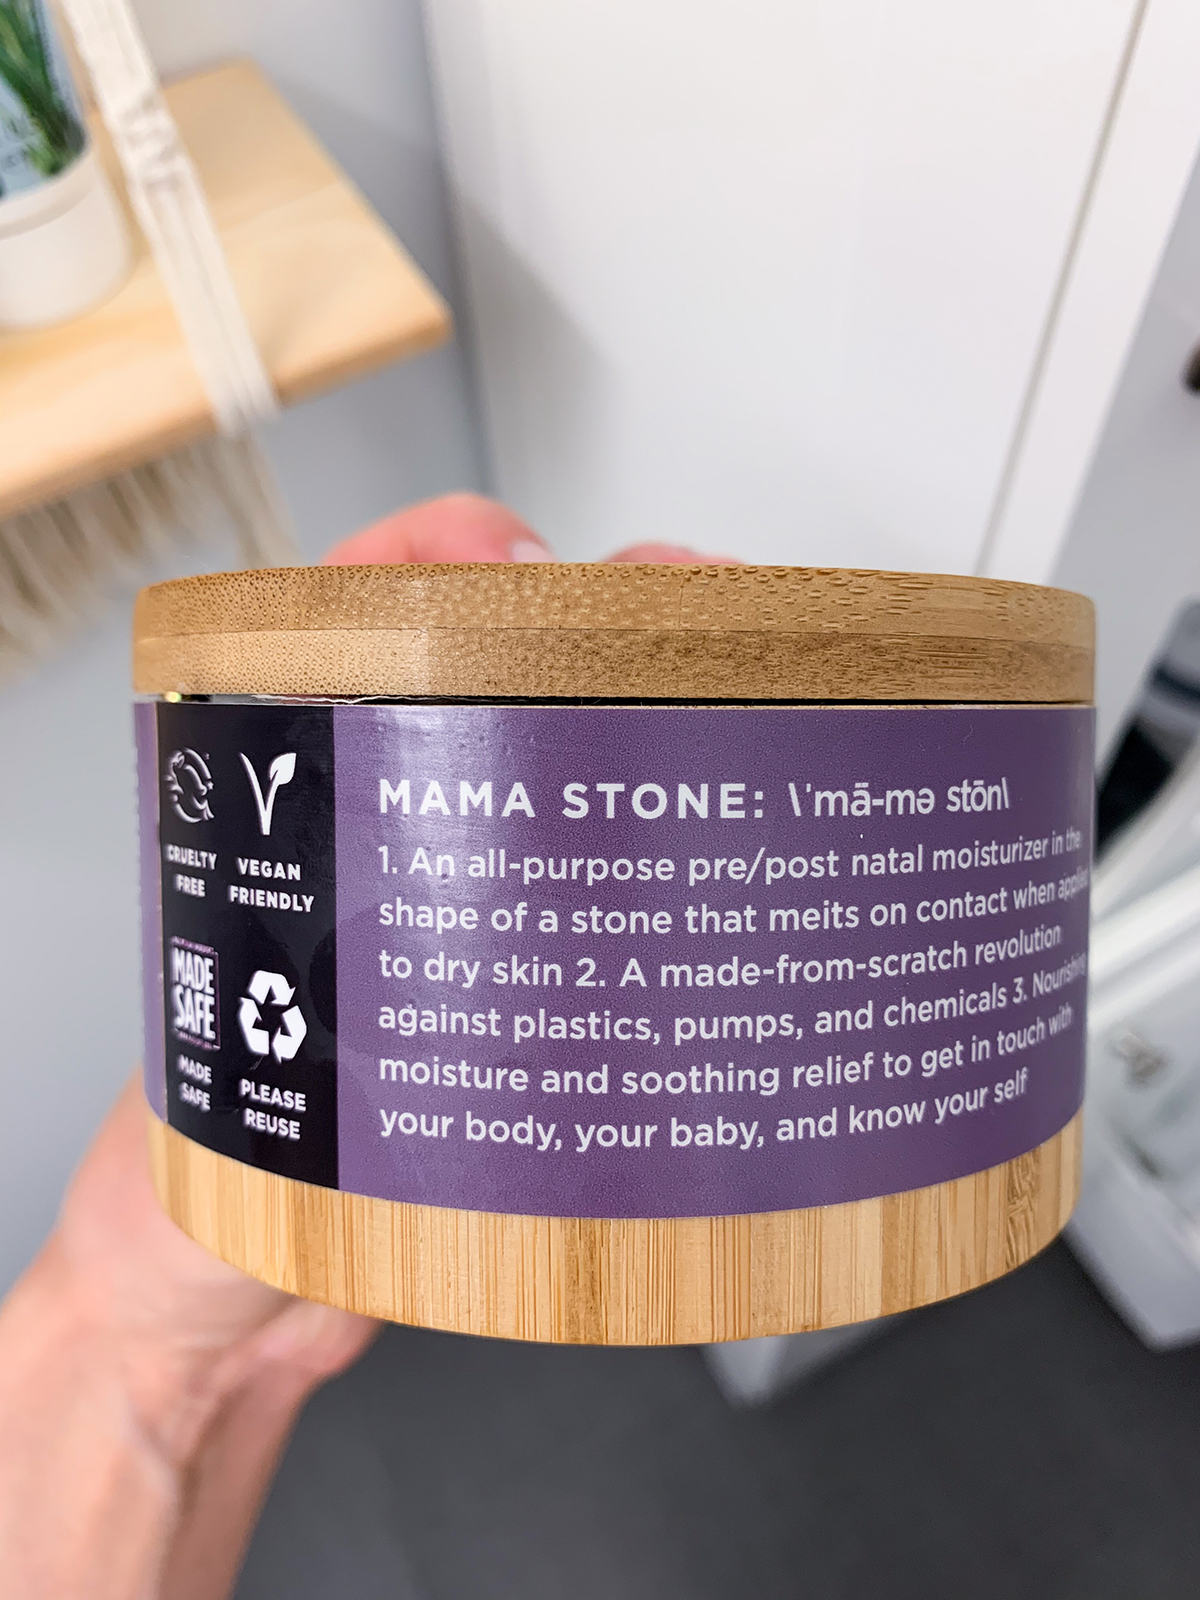 Katies Bliss Stretch Mark and Moisturizing Products Mama Stone